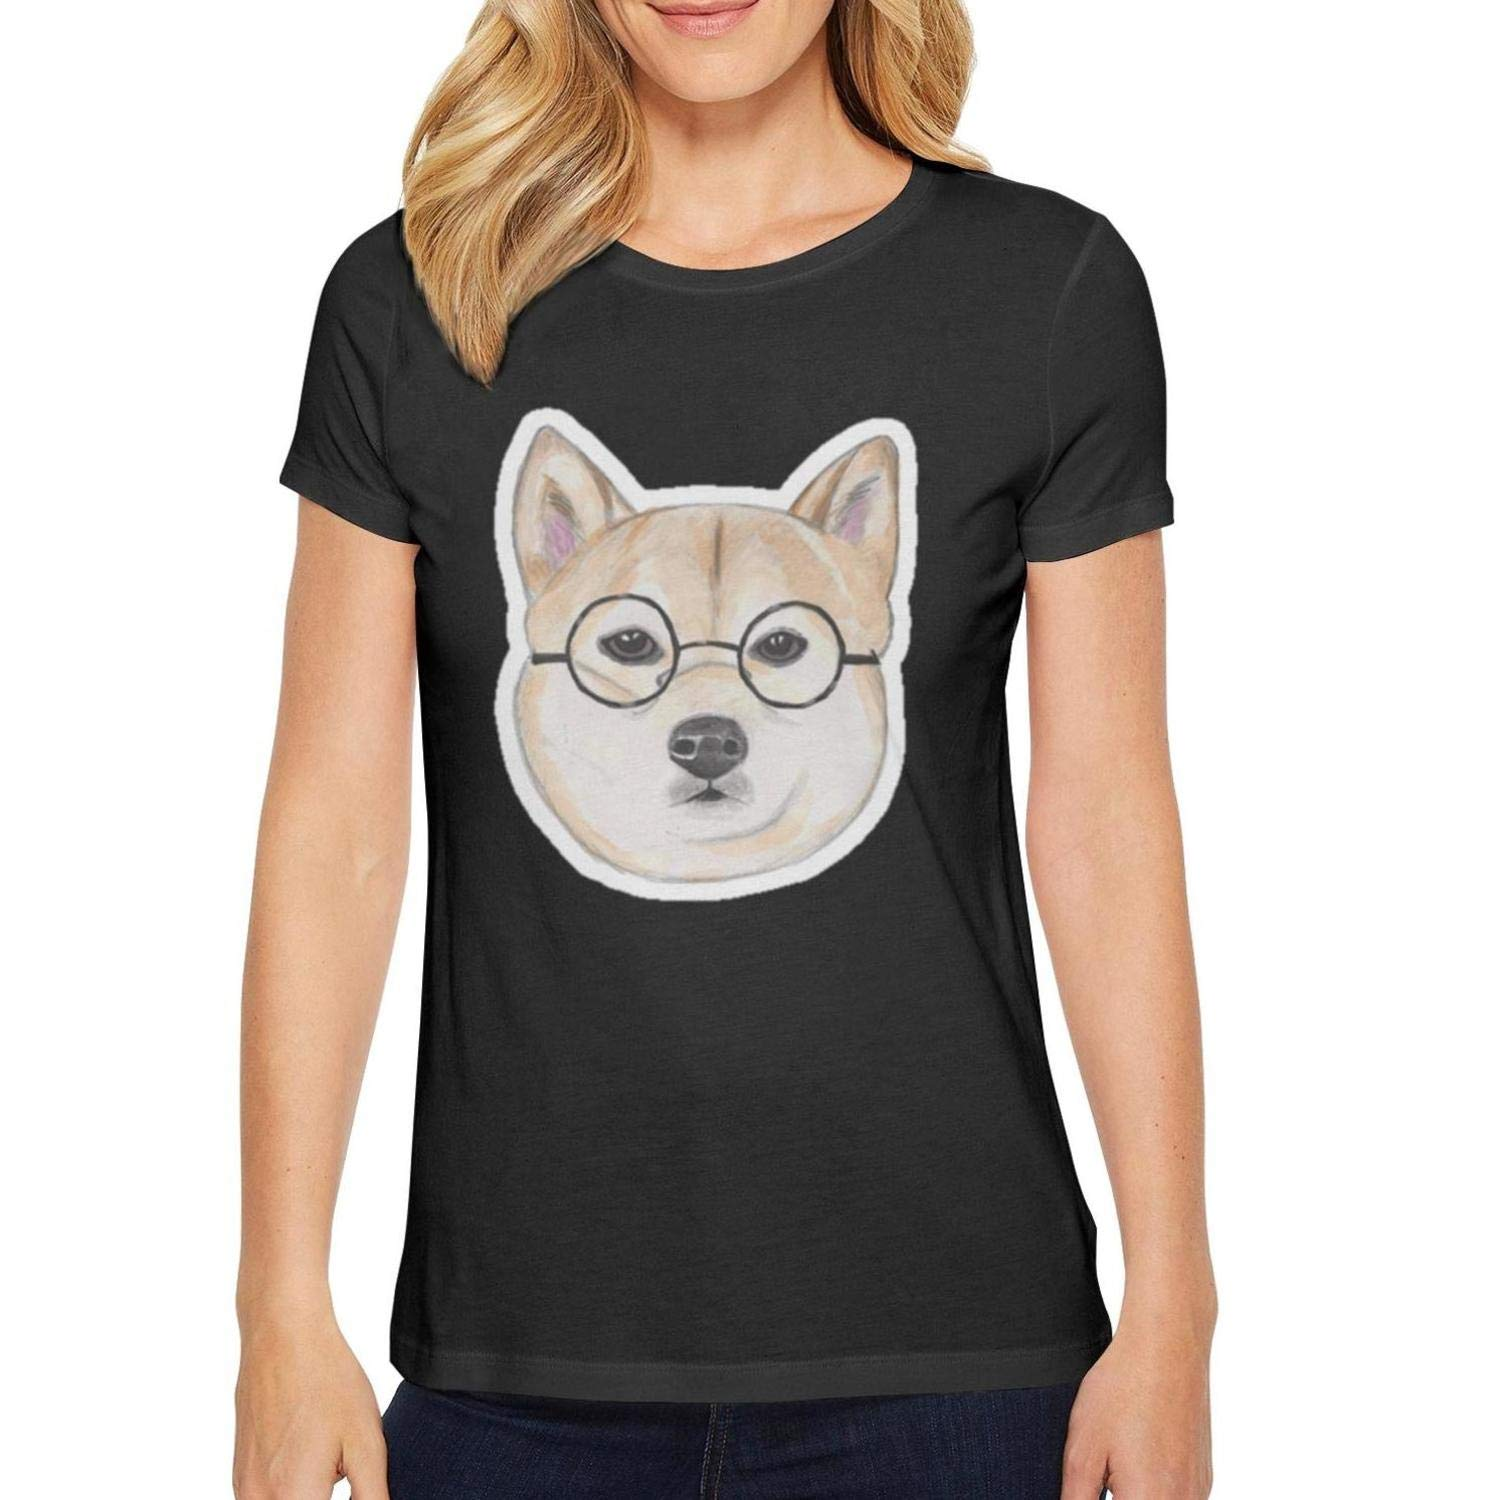 HGTYUS Women Black Tshirts Doge Face Glasses O-Neck Short Sleeve Cotton